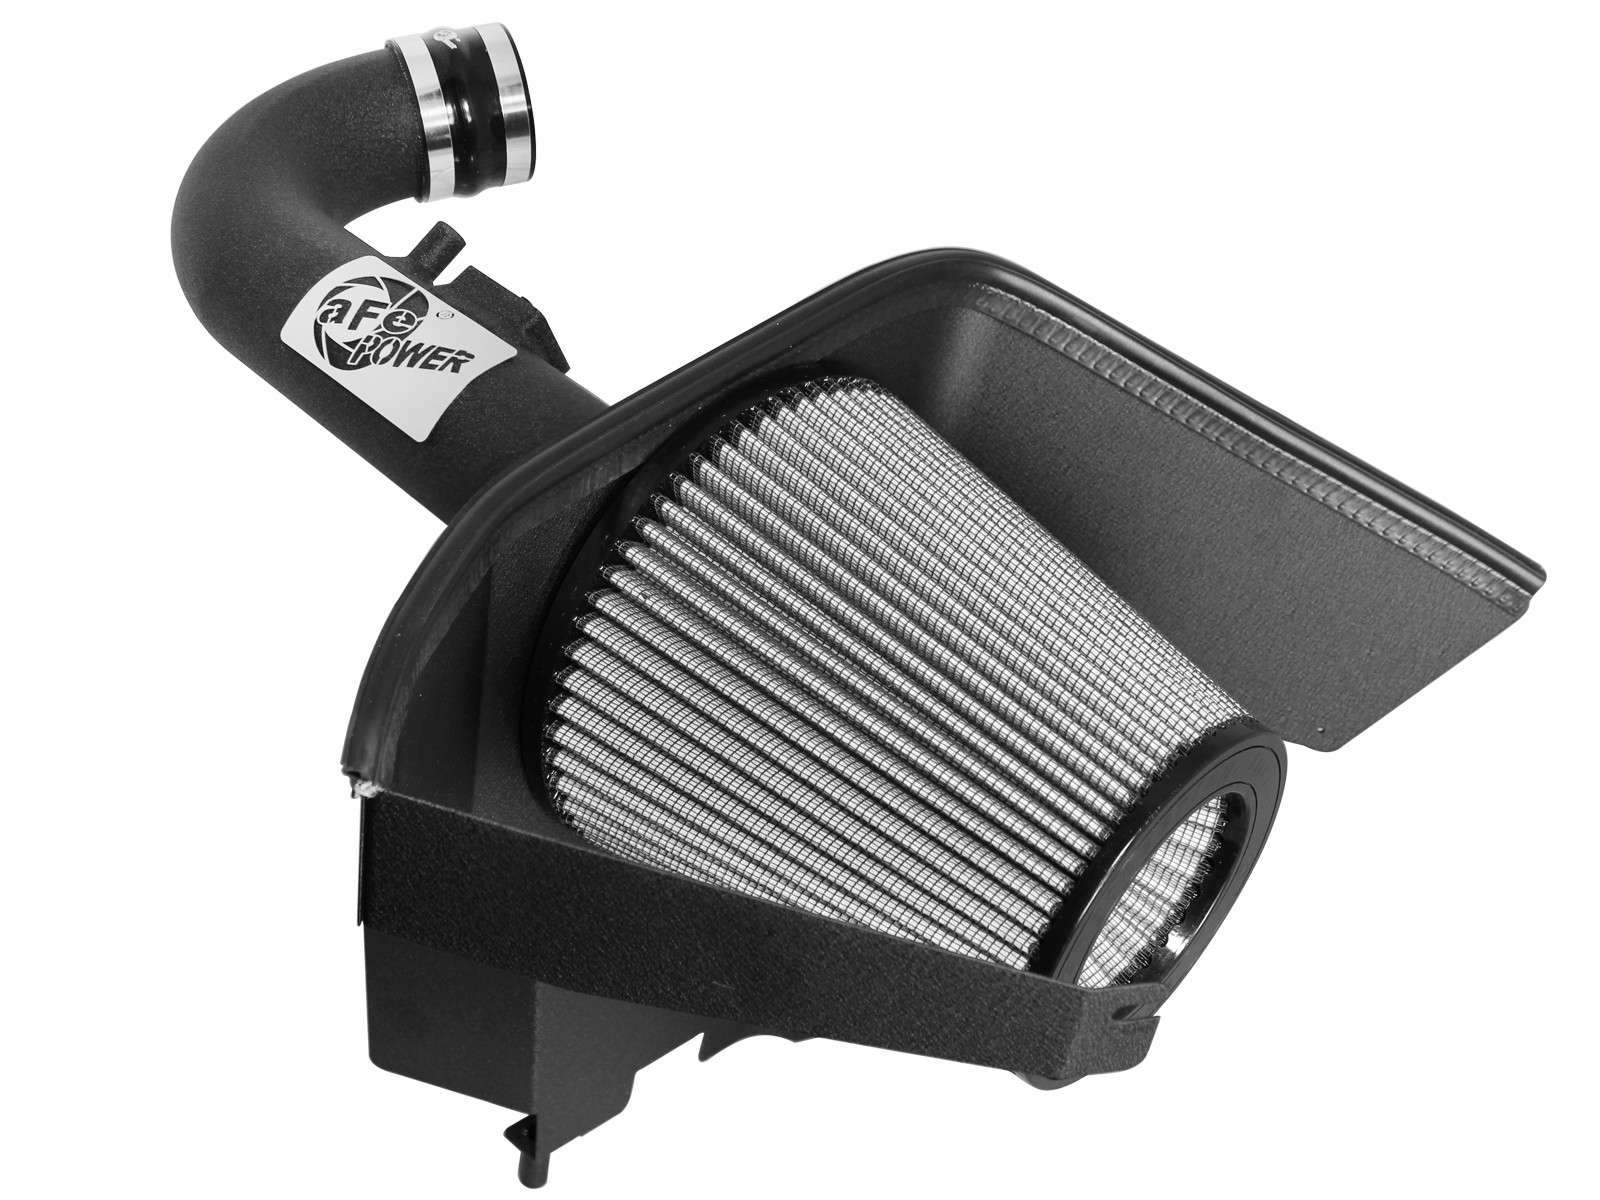 aFe POWER 51-12382 Magnum FORCE Stage-2 Pro DRY S Cold Air Intake System